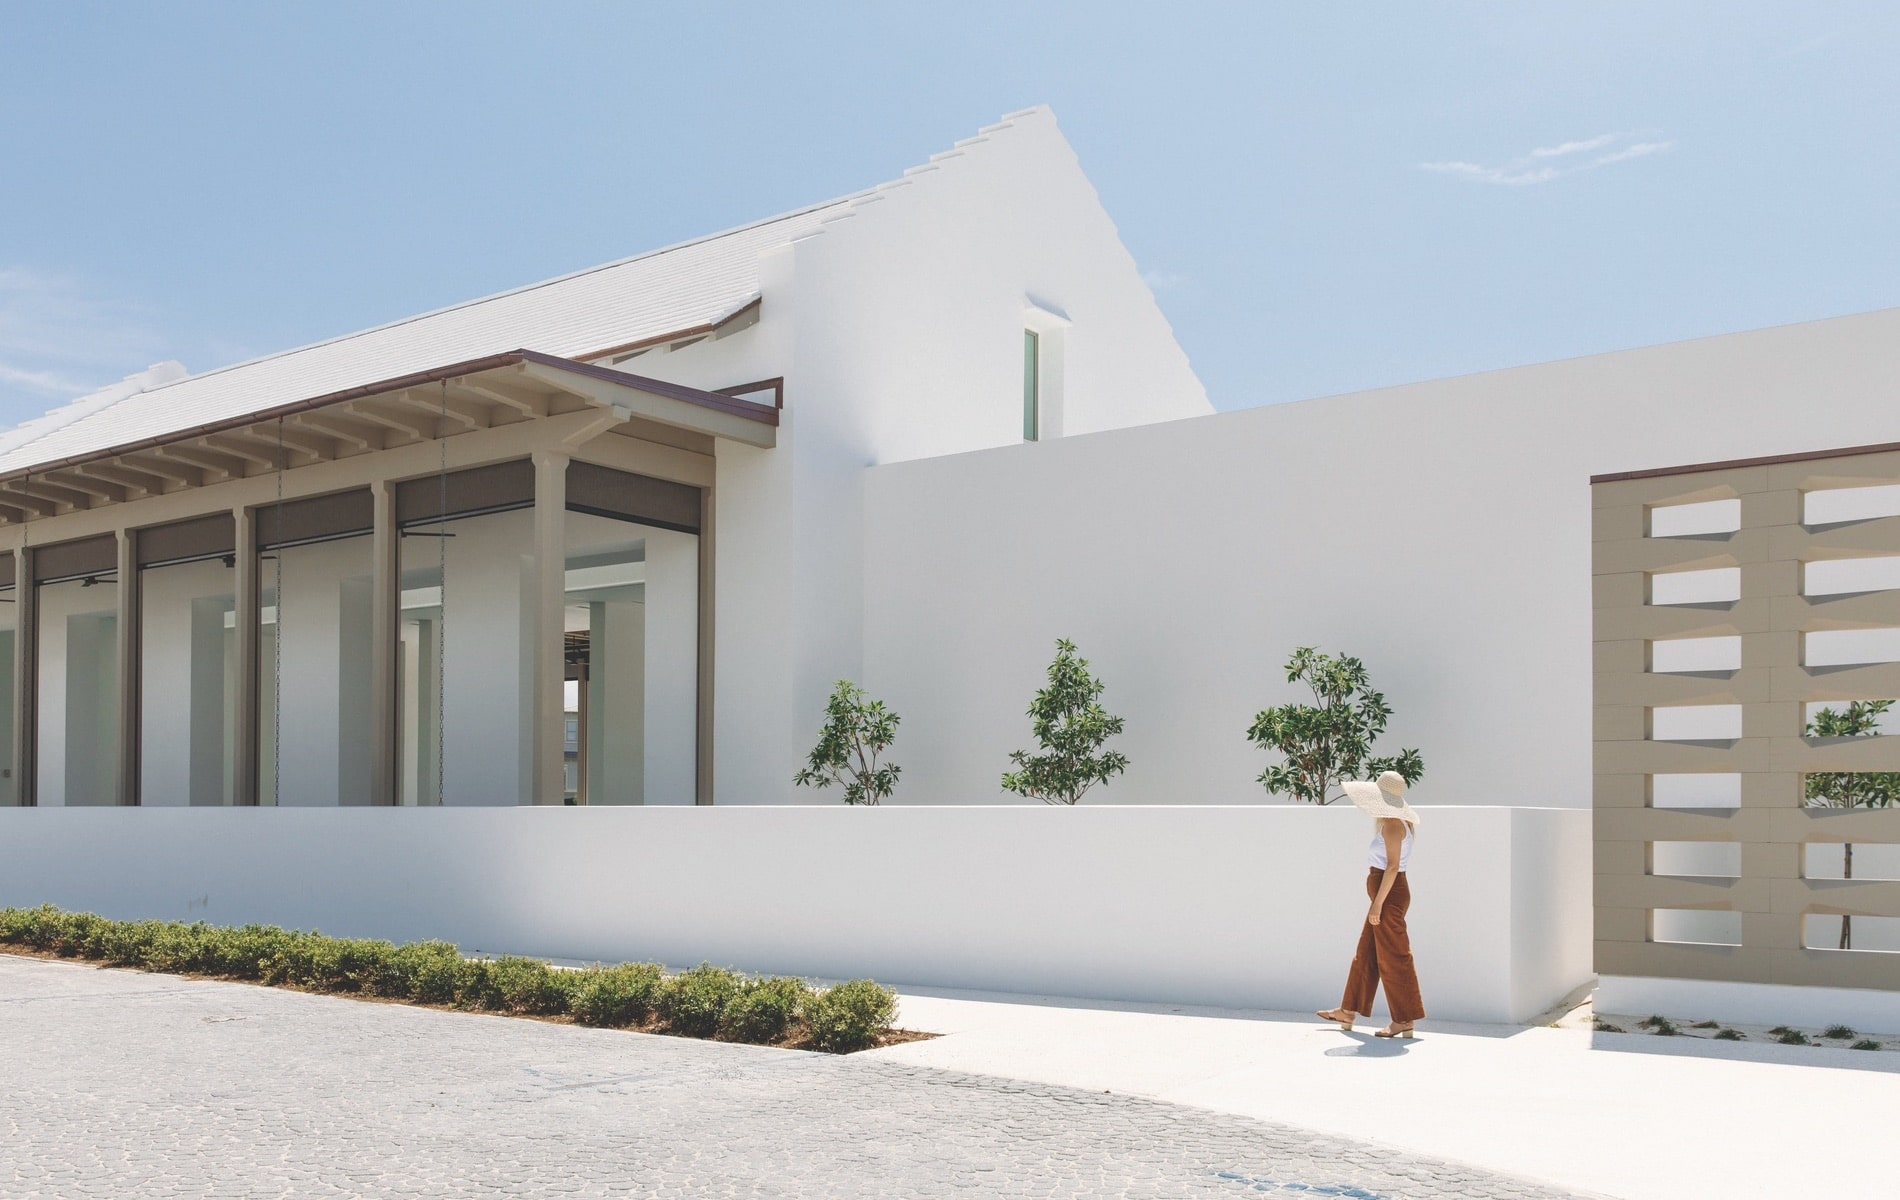 ZUMA Wellness Center, Alys Beach Florida, Nequette Architecture & Design